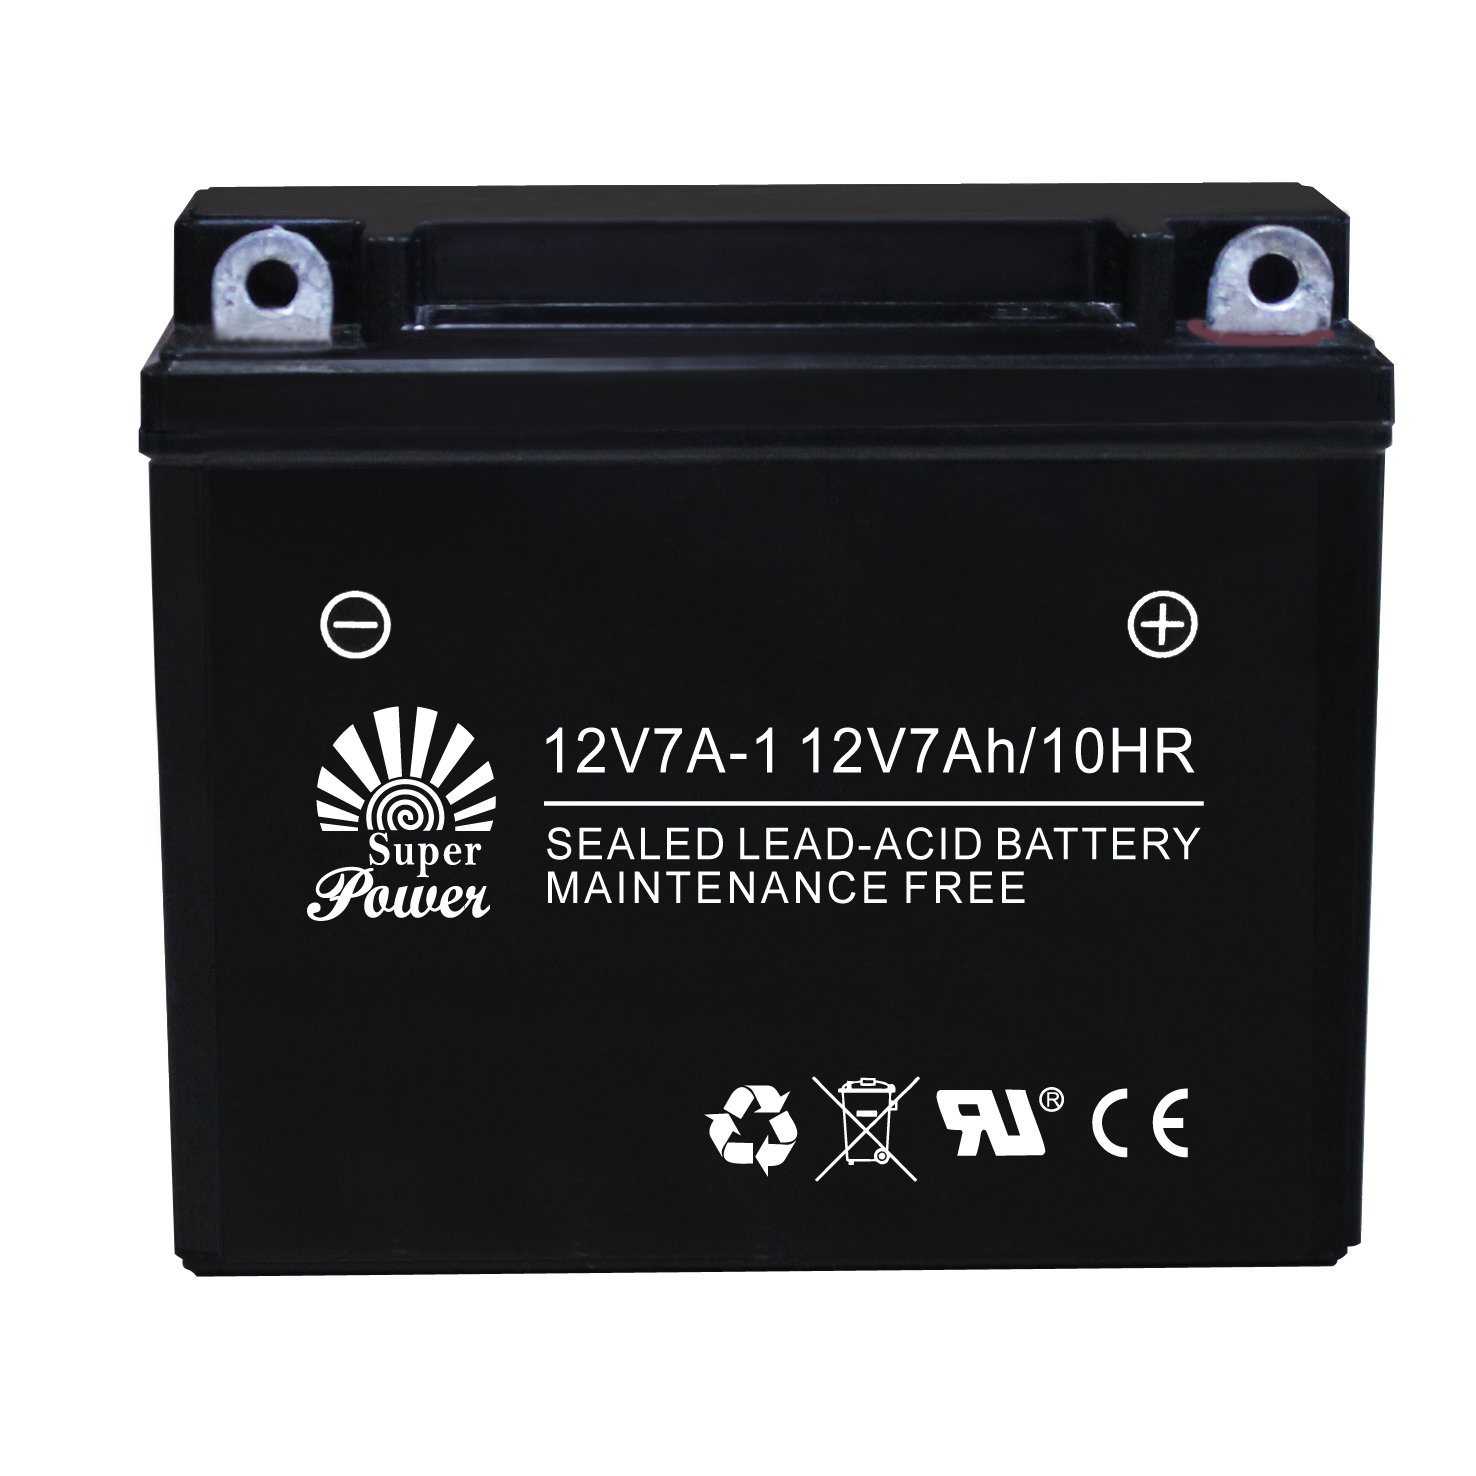 VRLA Motorcycle Battery 12V 7ah with CE UL Certificate Called 12V7A-1